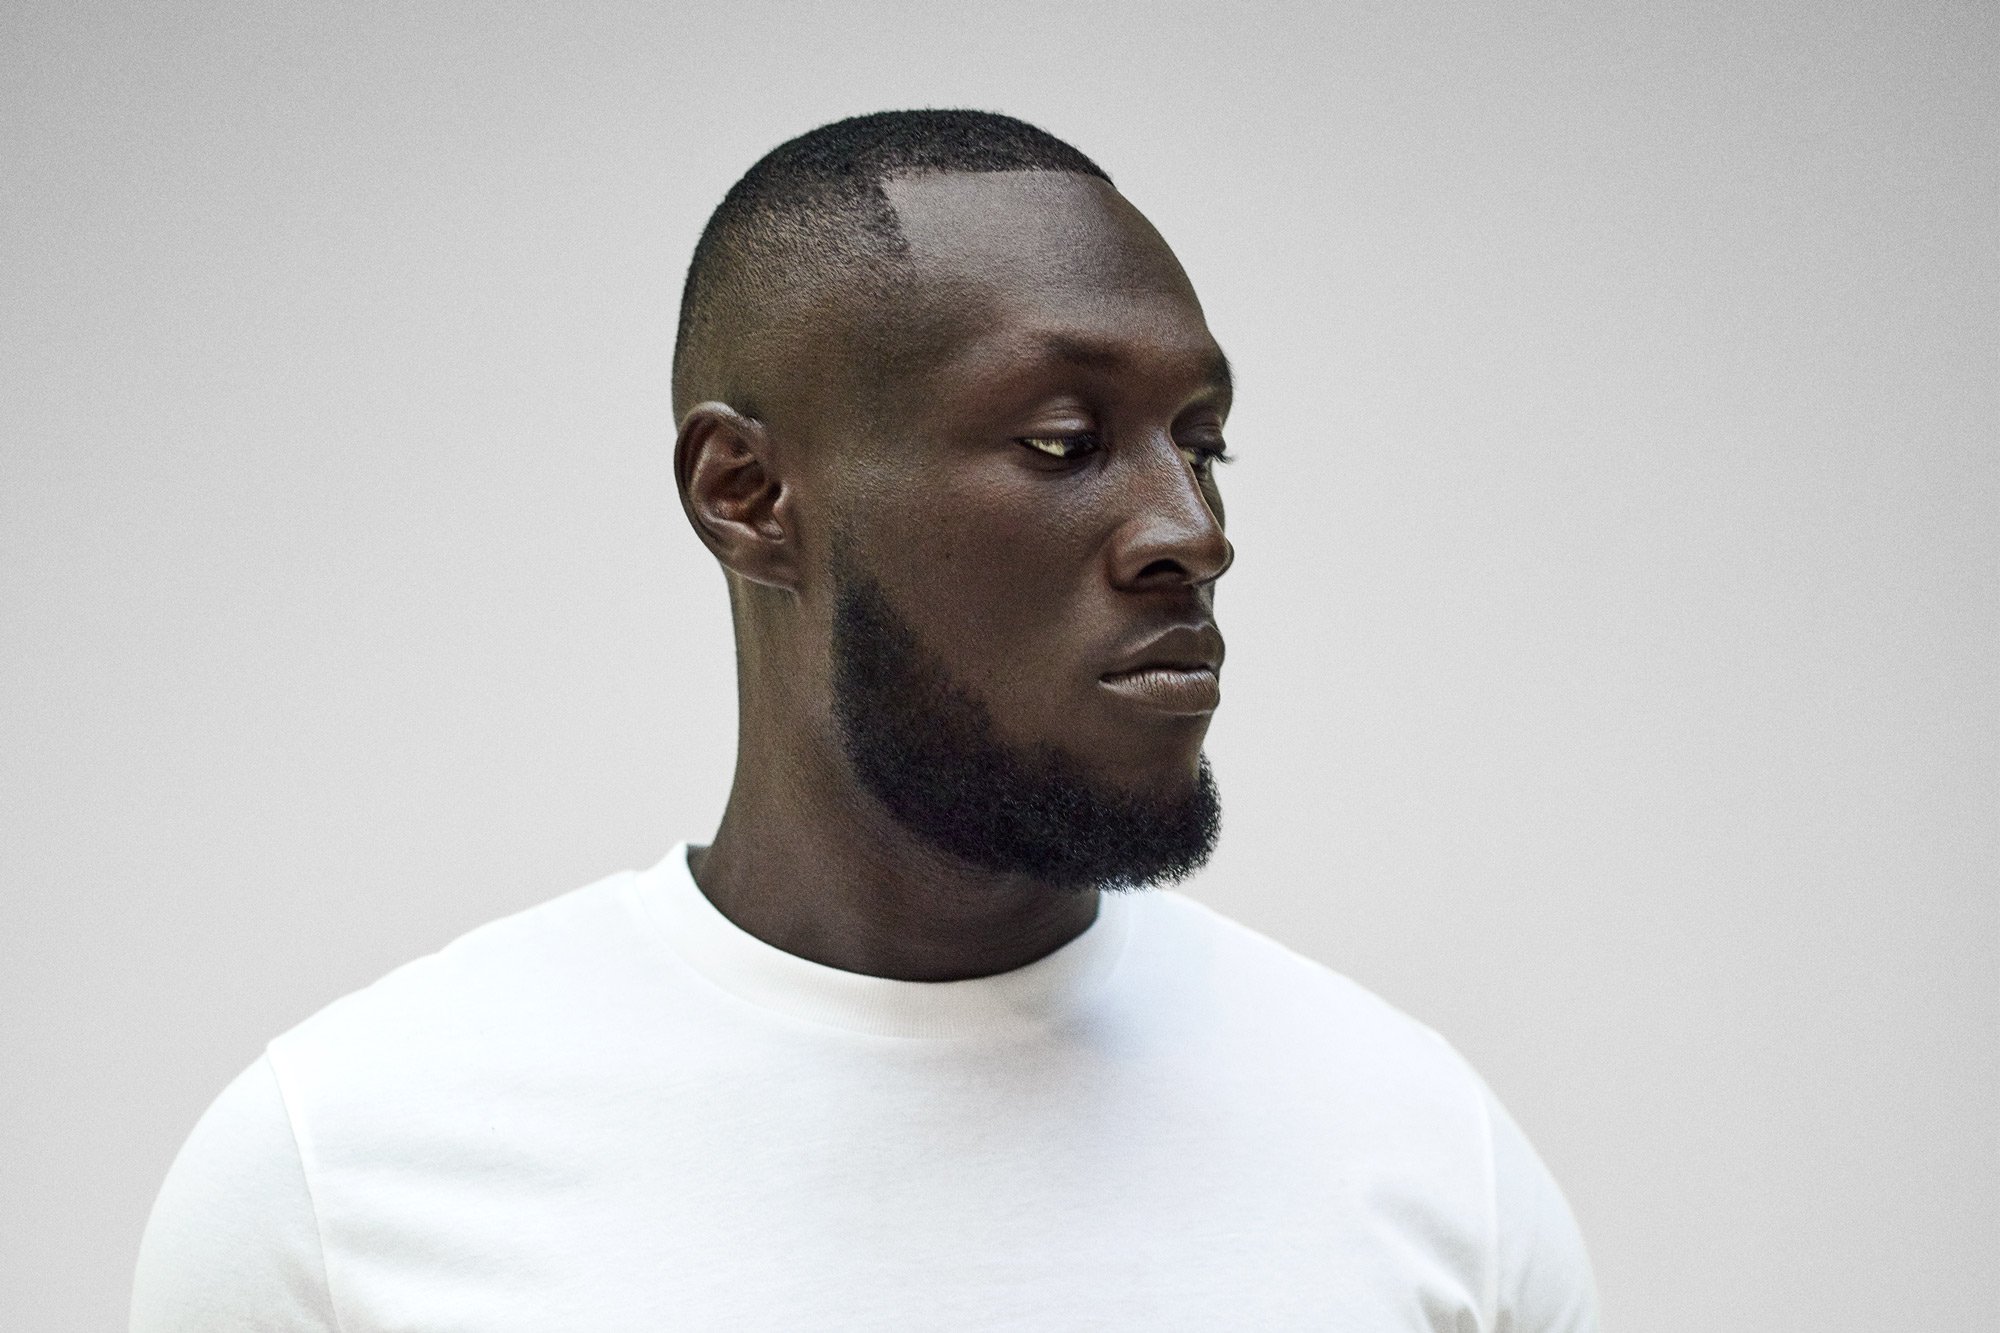 Stormzy Donates £500K to Fund Scholarships for Disadvantaged Students